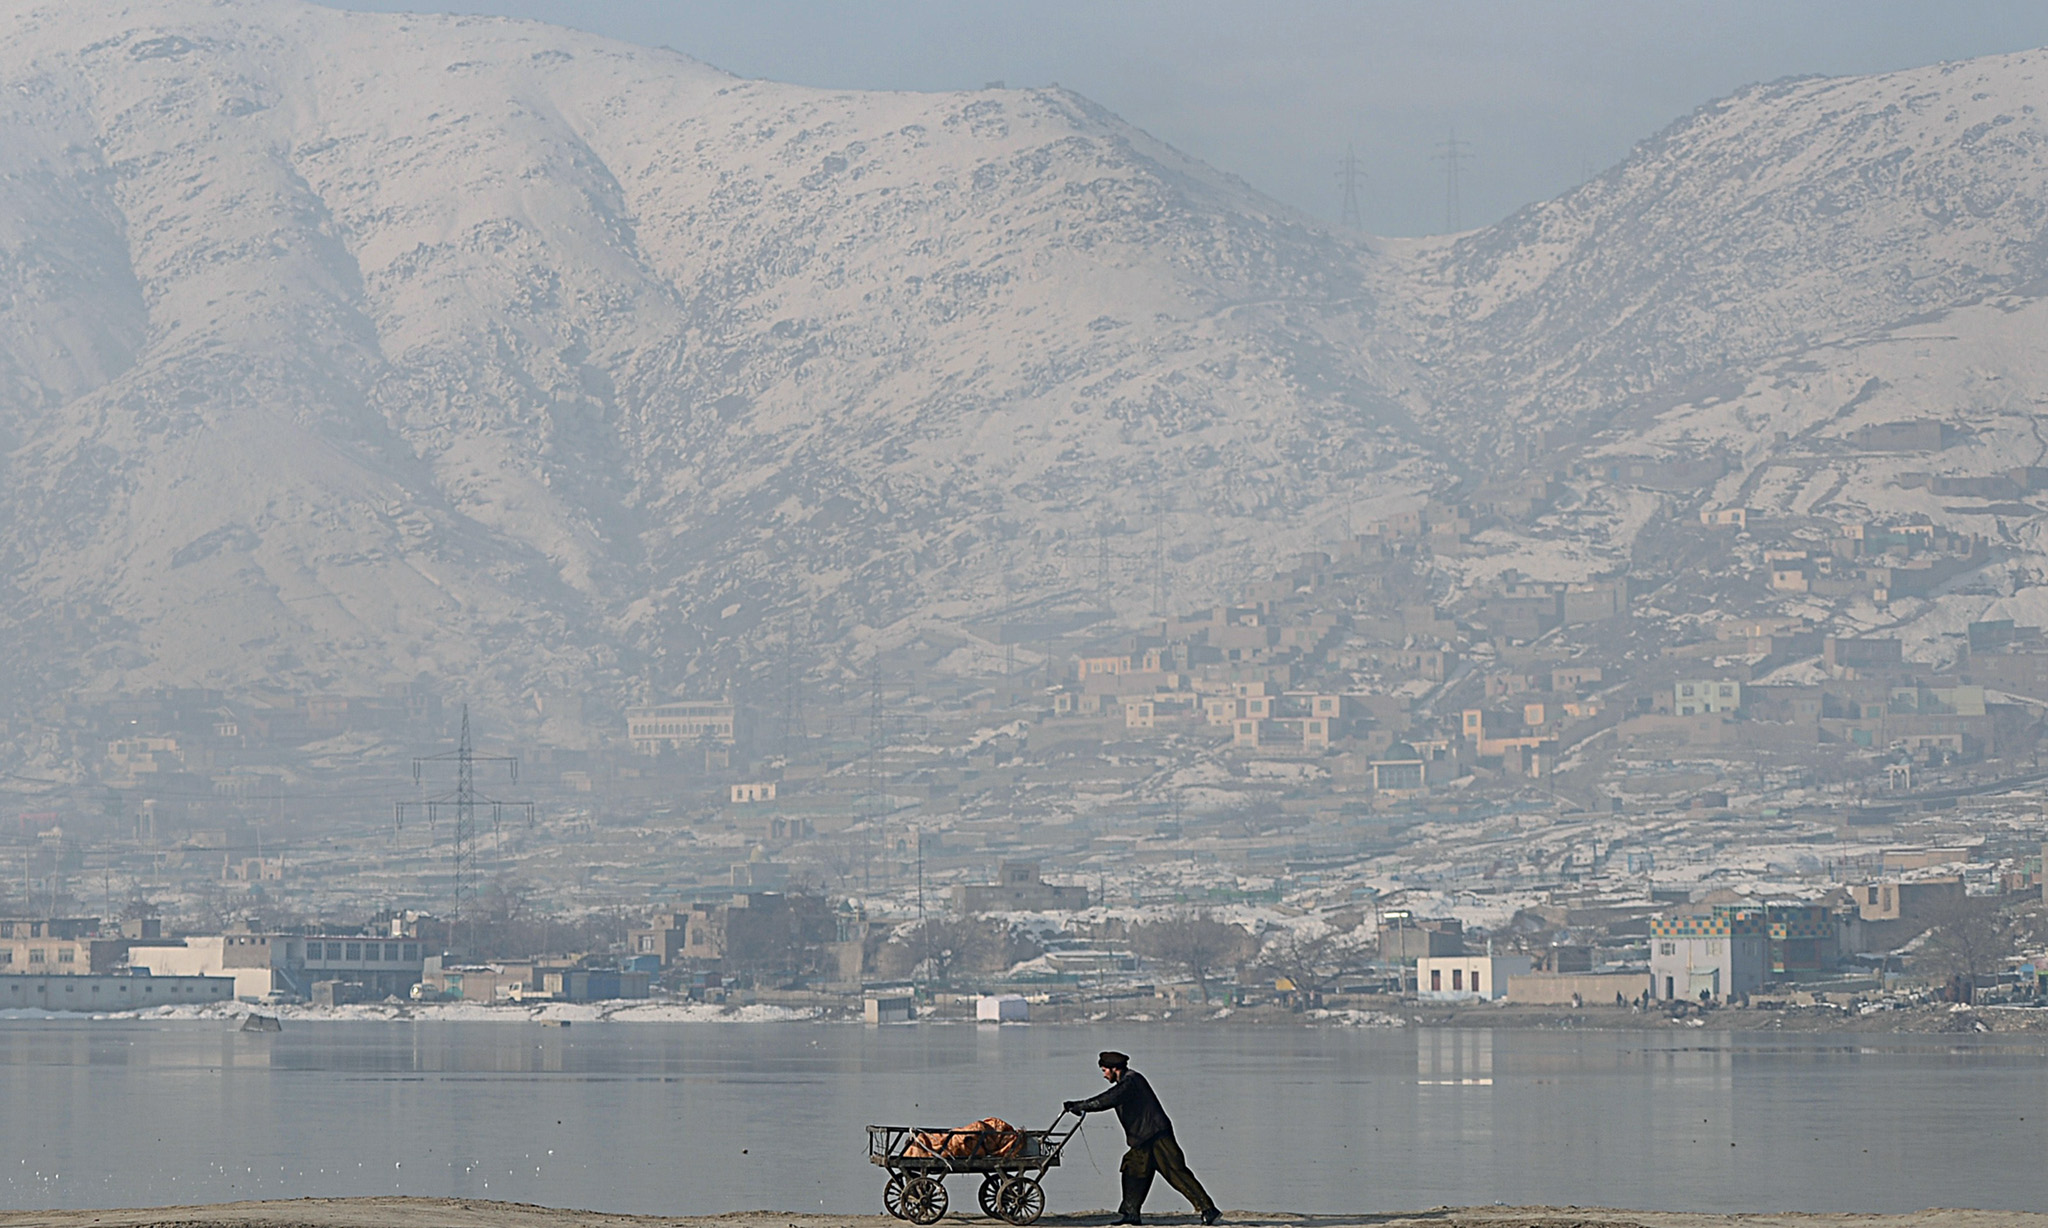 An Afghan man pushes his cart at Shuhada...An Afghan man pushes his cart at Shuhada Lake in Kabul on February 10, 2014.   Afghanistan's economy is recovering from decades of conflict but despite the significant improvement in the last decade it is extremely poor, landlocked, and highly dependent on foreign aid.   AFP PHOTO/ Wakil KohsarWAKIL KOHSAR/AFP/Getty Images